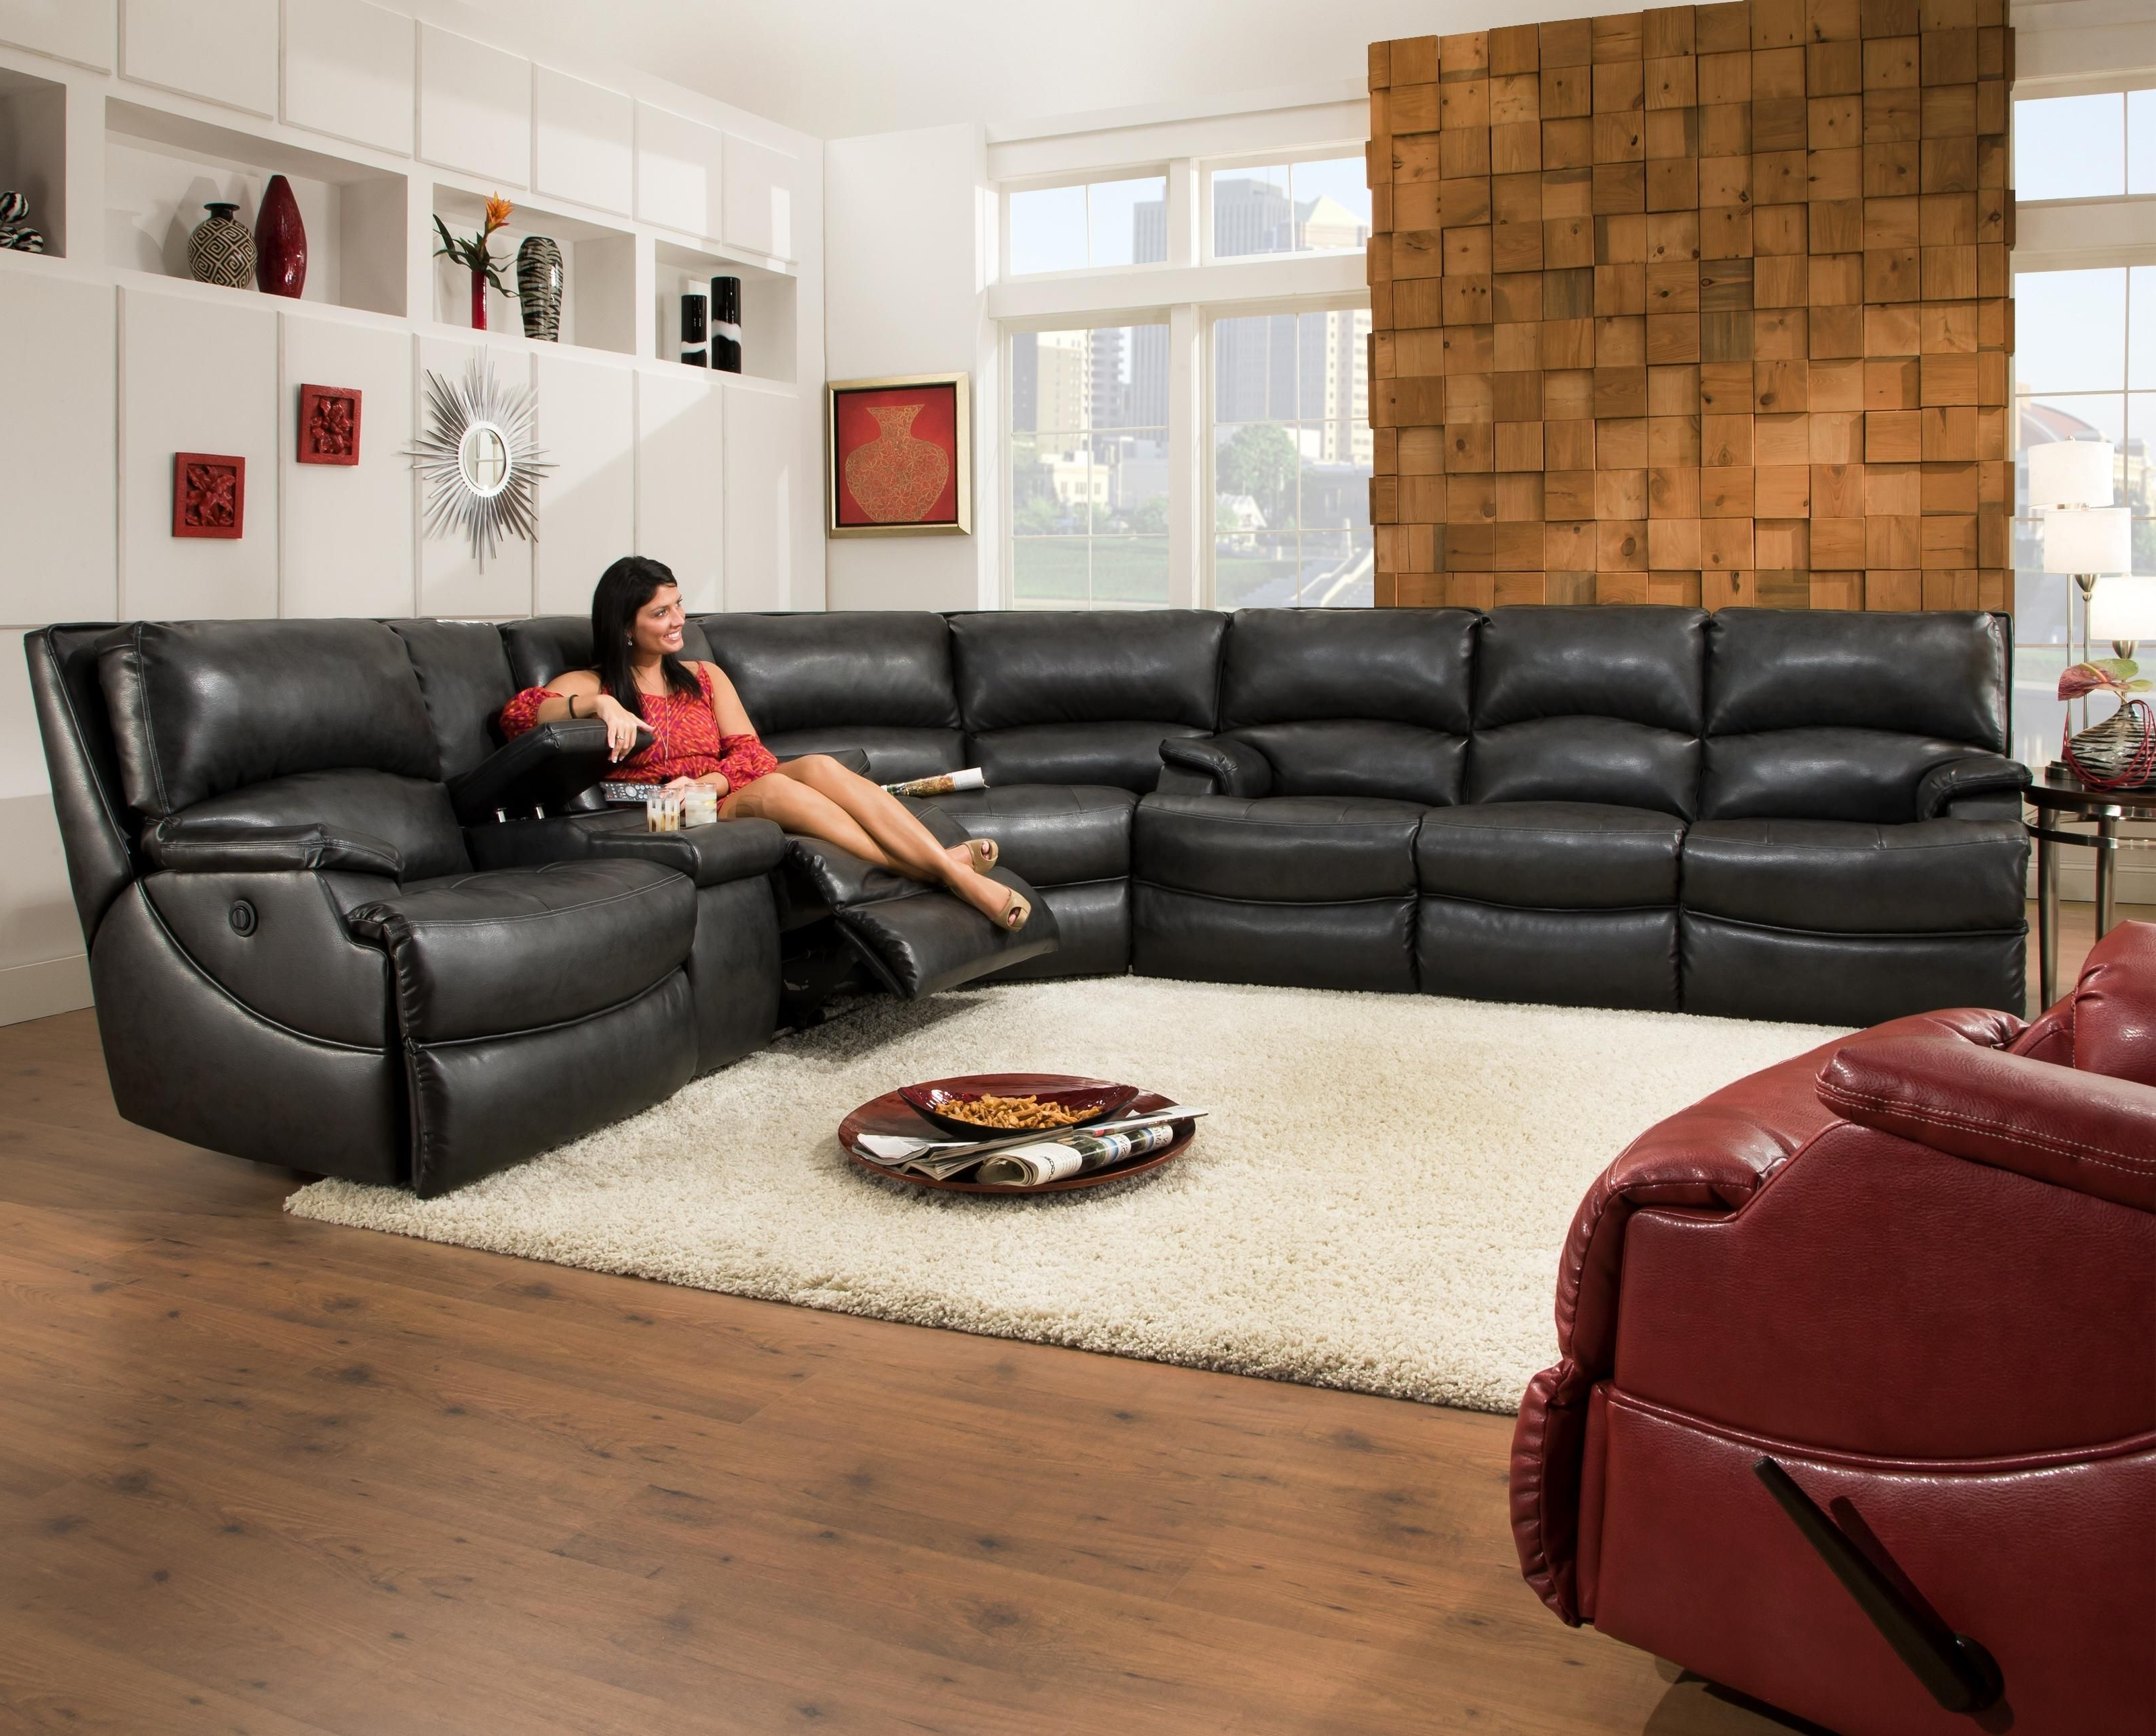 Southern Motion Shazam Six Seat Reclining Sectional Sofa With Cup In Latest Tampa Sectional Sofas (View 10 of 15)